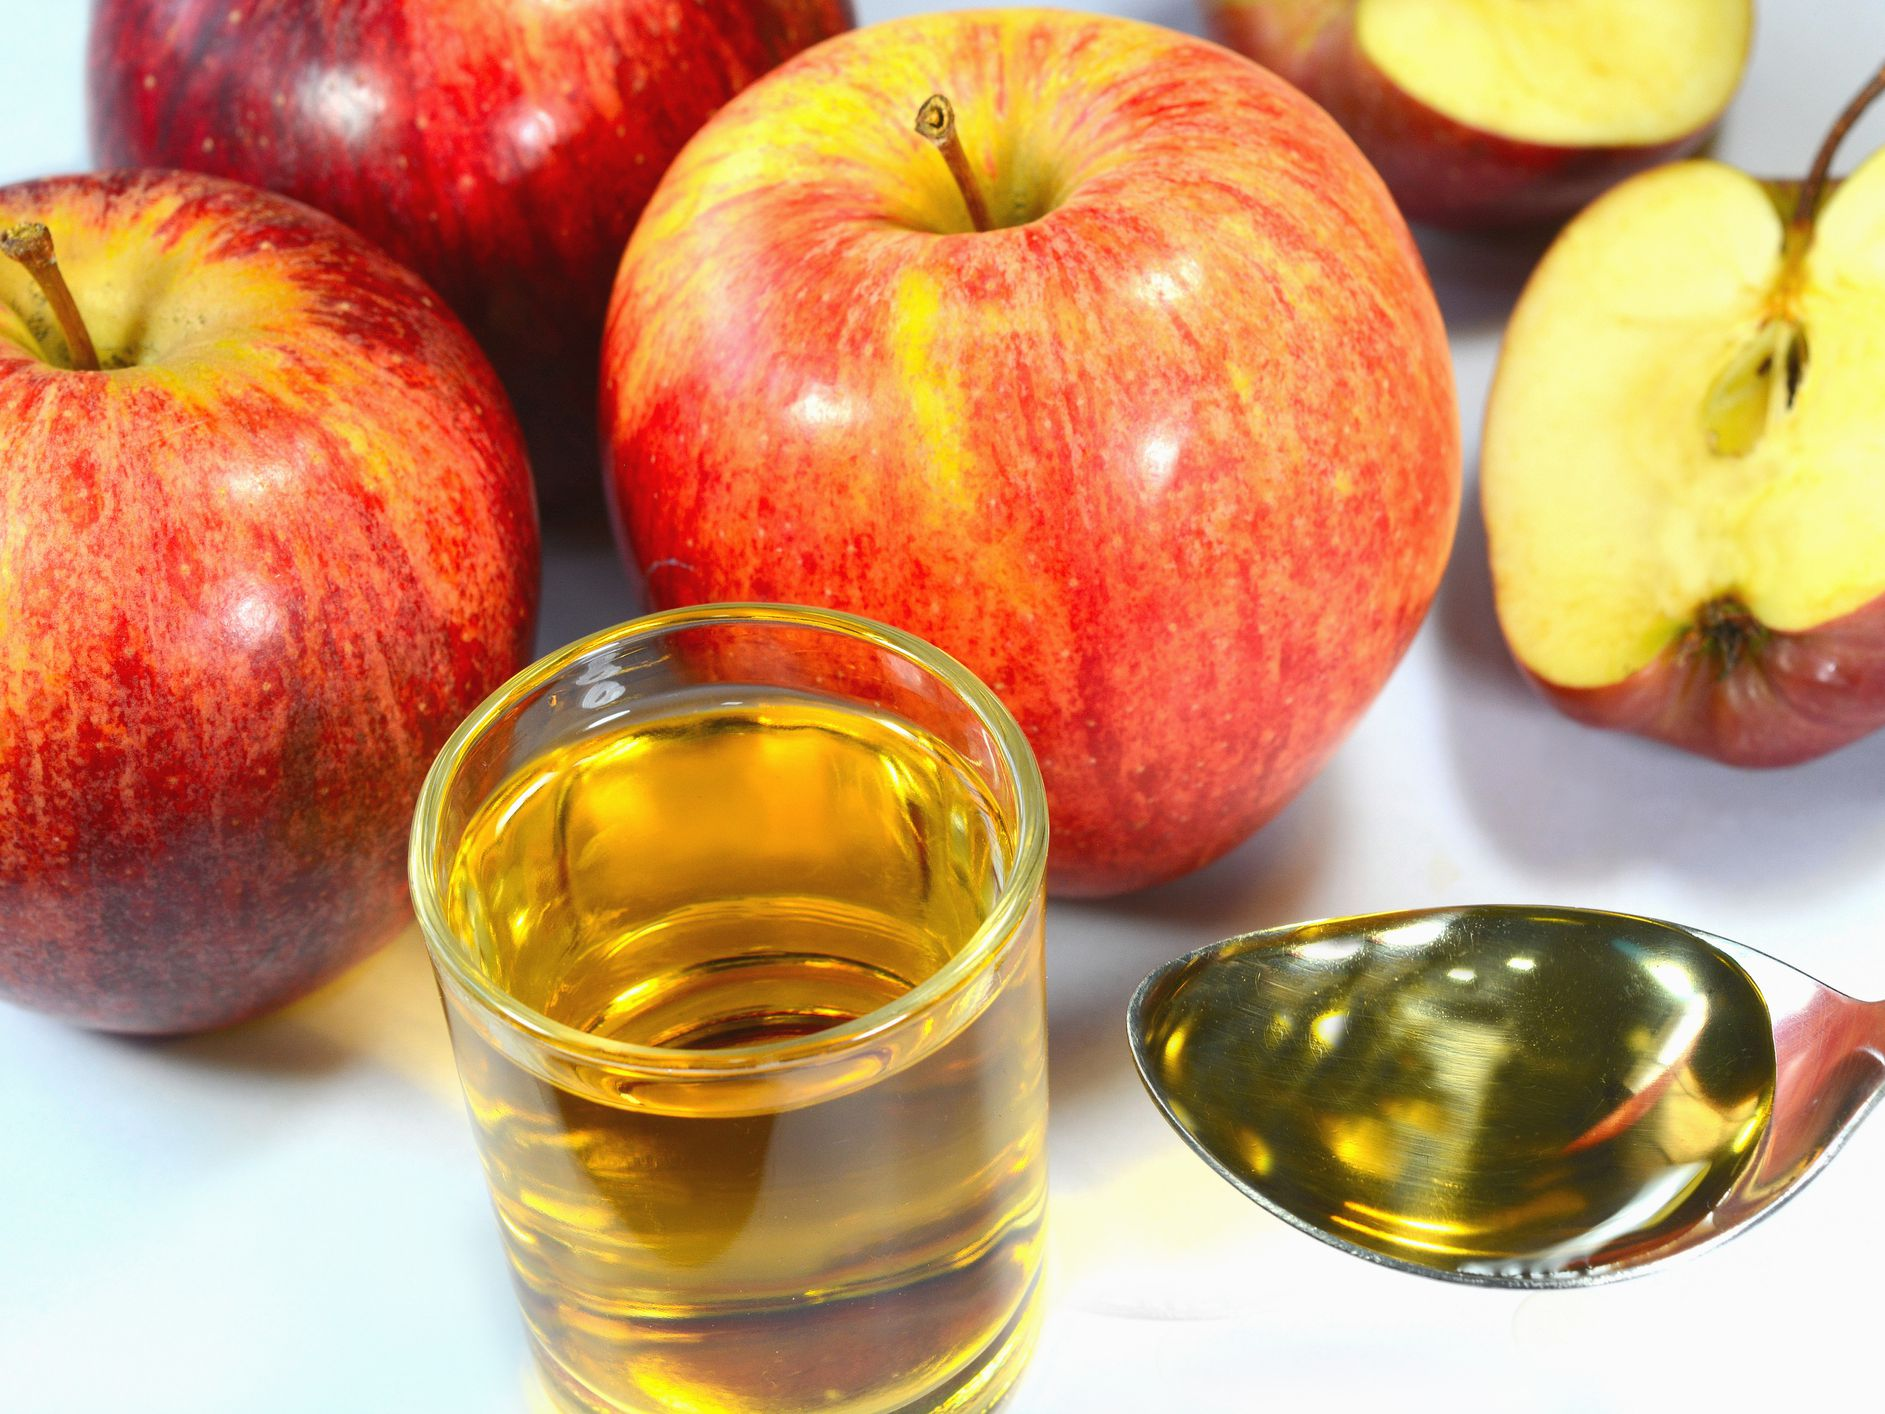 Apple Cider Vinegar: Benefits, Side Effects, Dosage, and